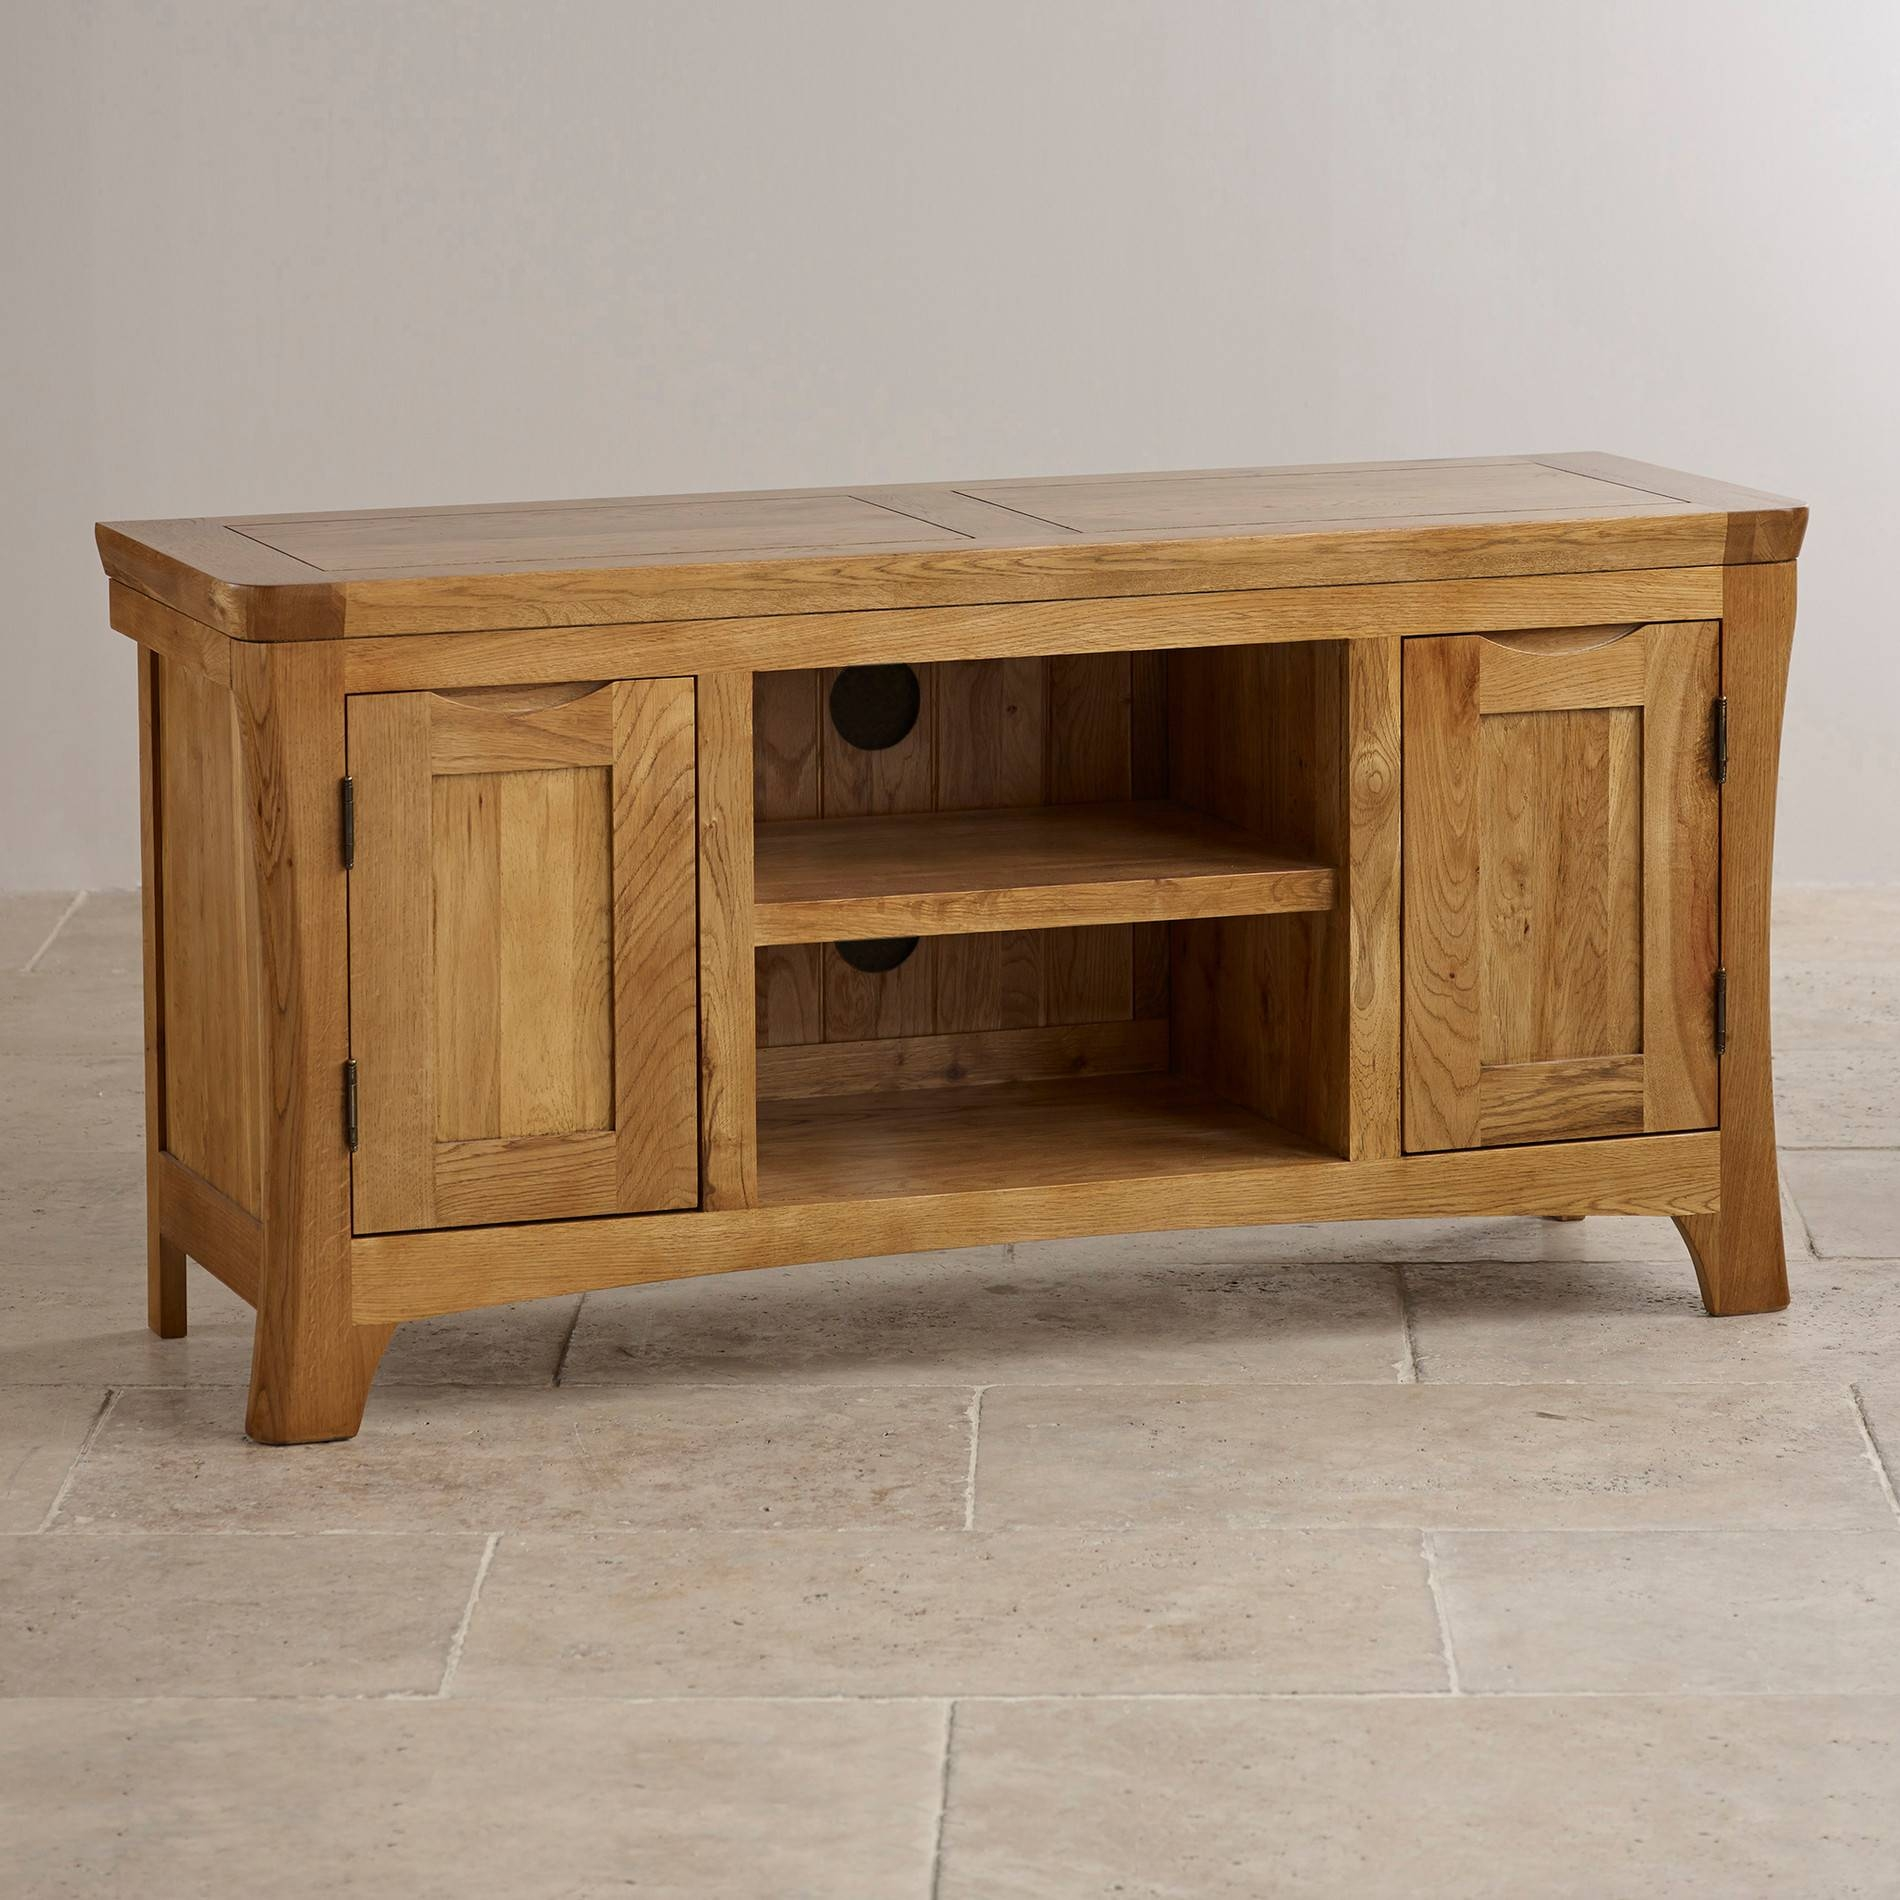 Orrick Wide Tv Cabinet In Rustic Solid Oak | Oak Furniture Land with Widescreen Tv Cabinets (Image 11 of 15)